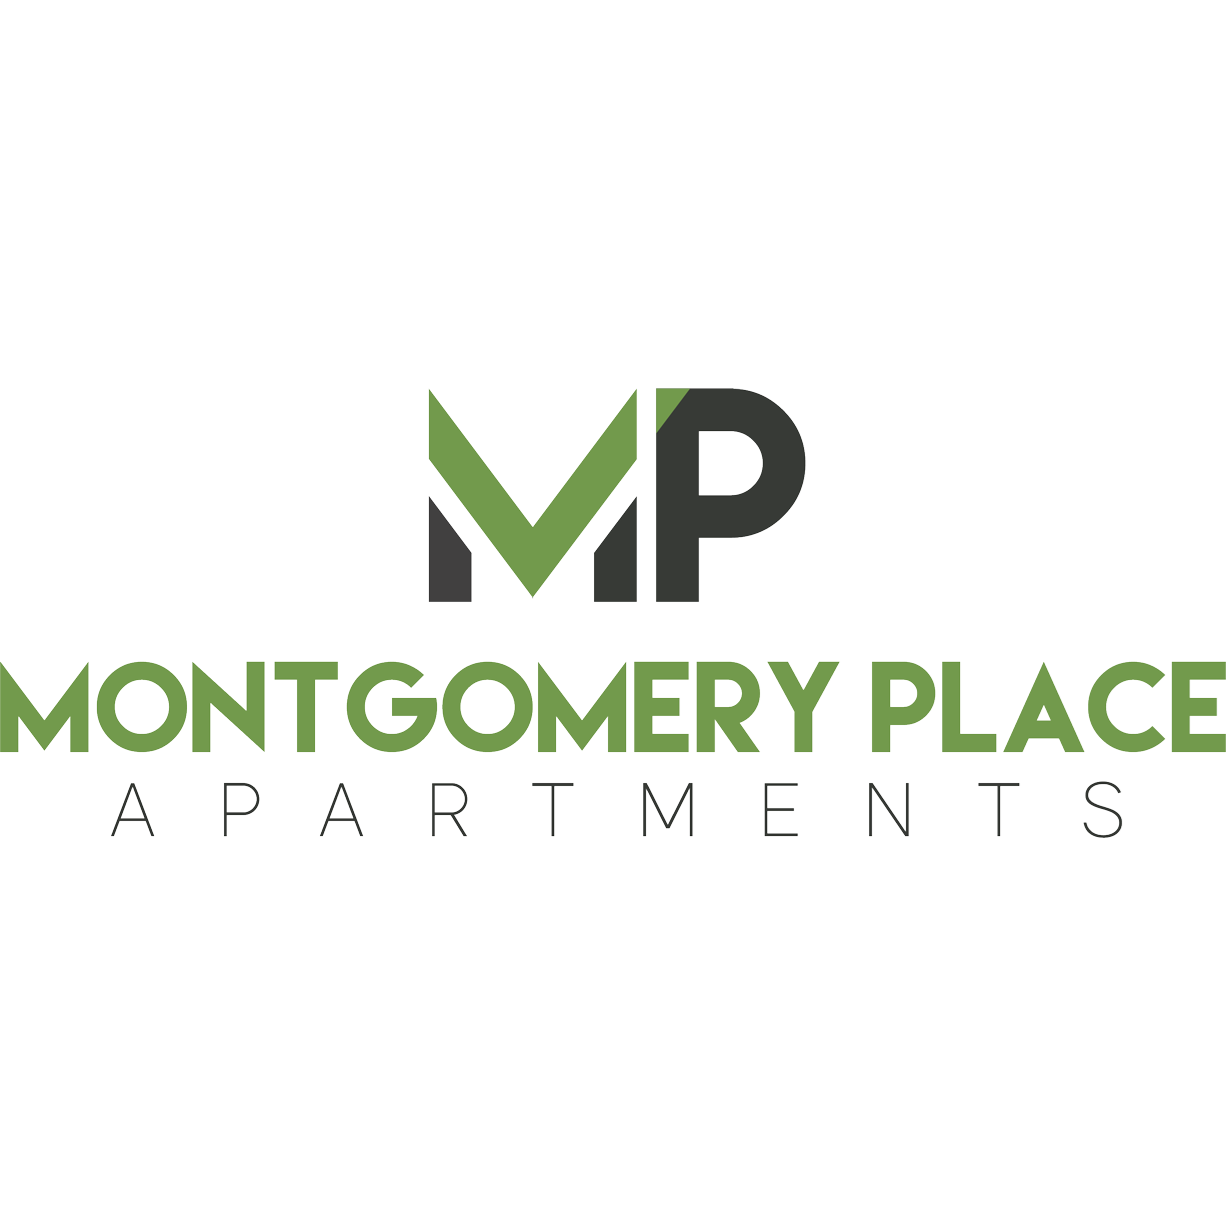 Montgomery Place Apartments - Montgomery, IL 60538 - (248)686-3500   ShowMeLocal.com